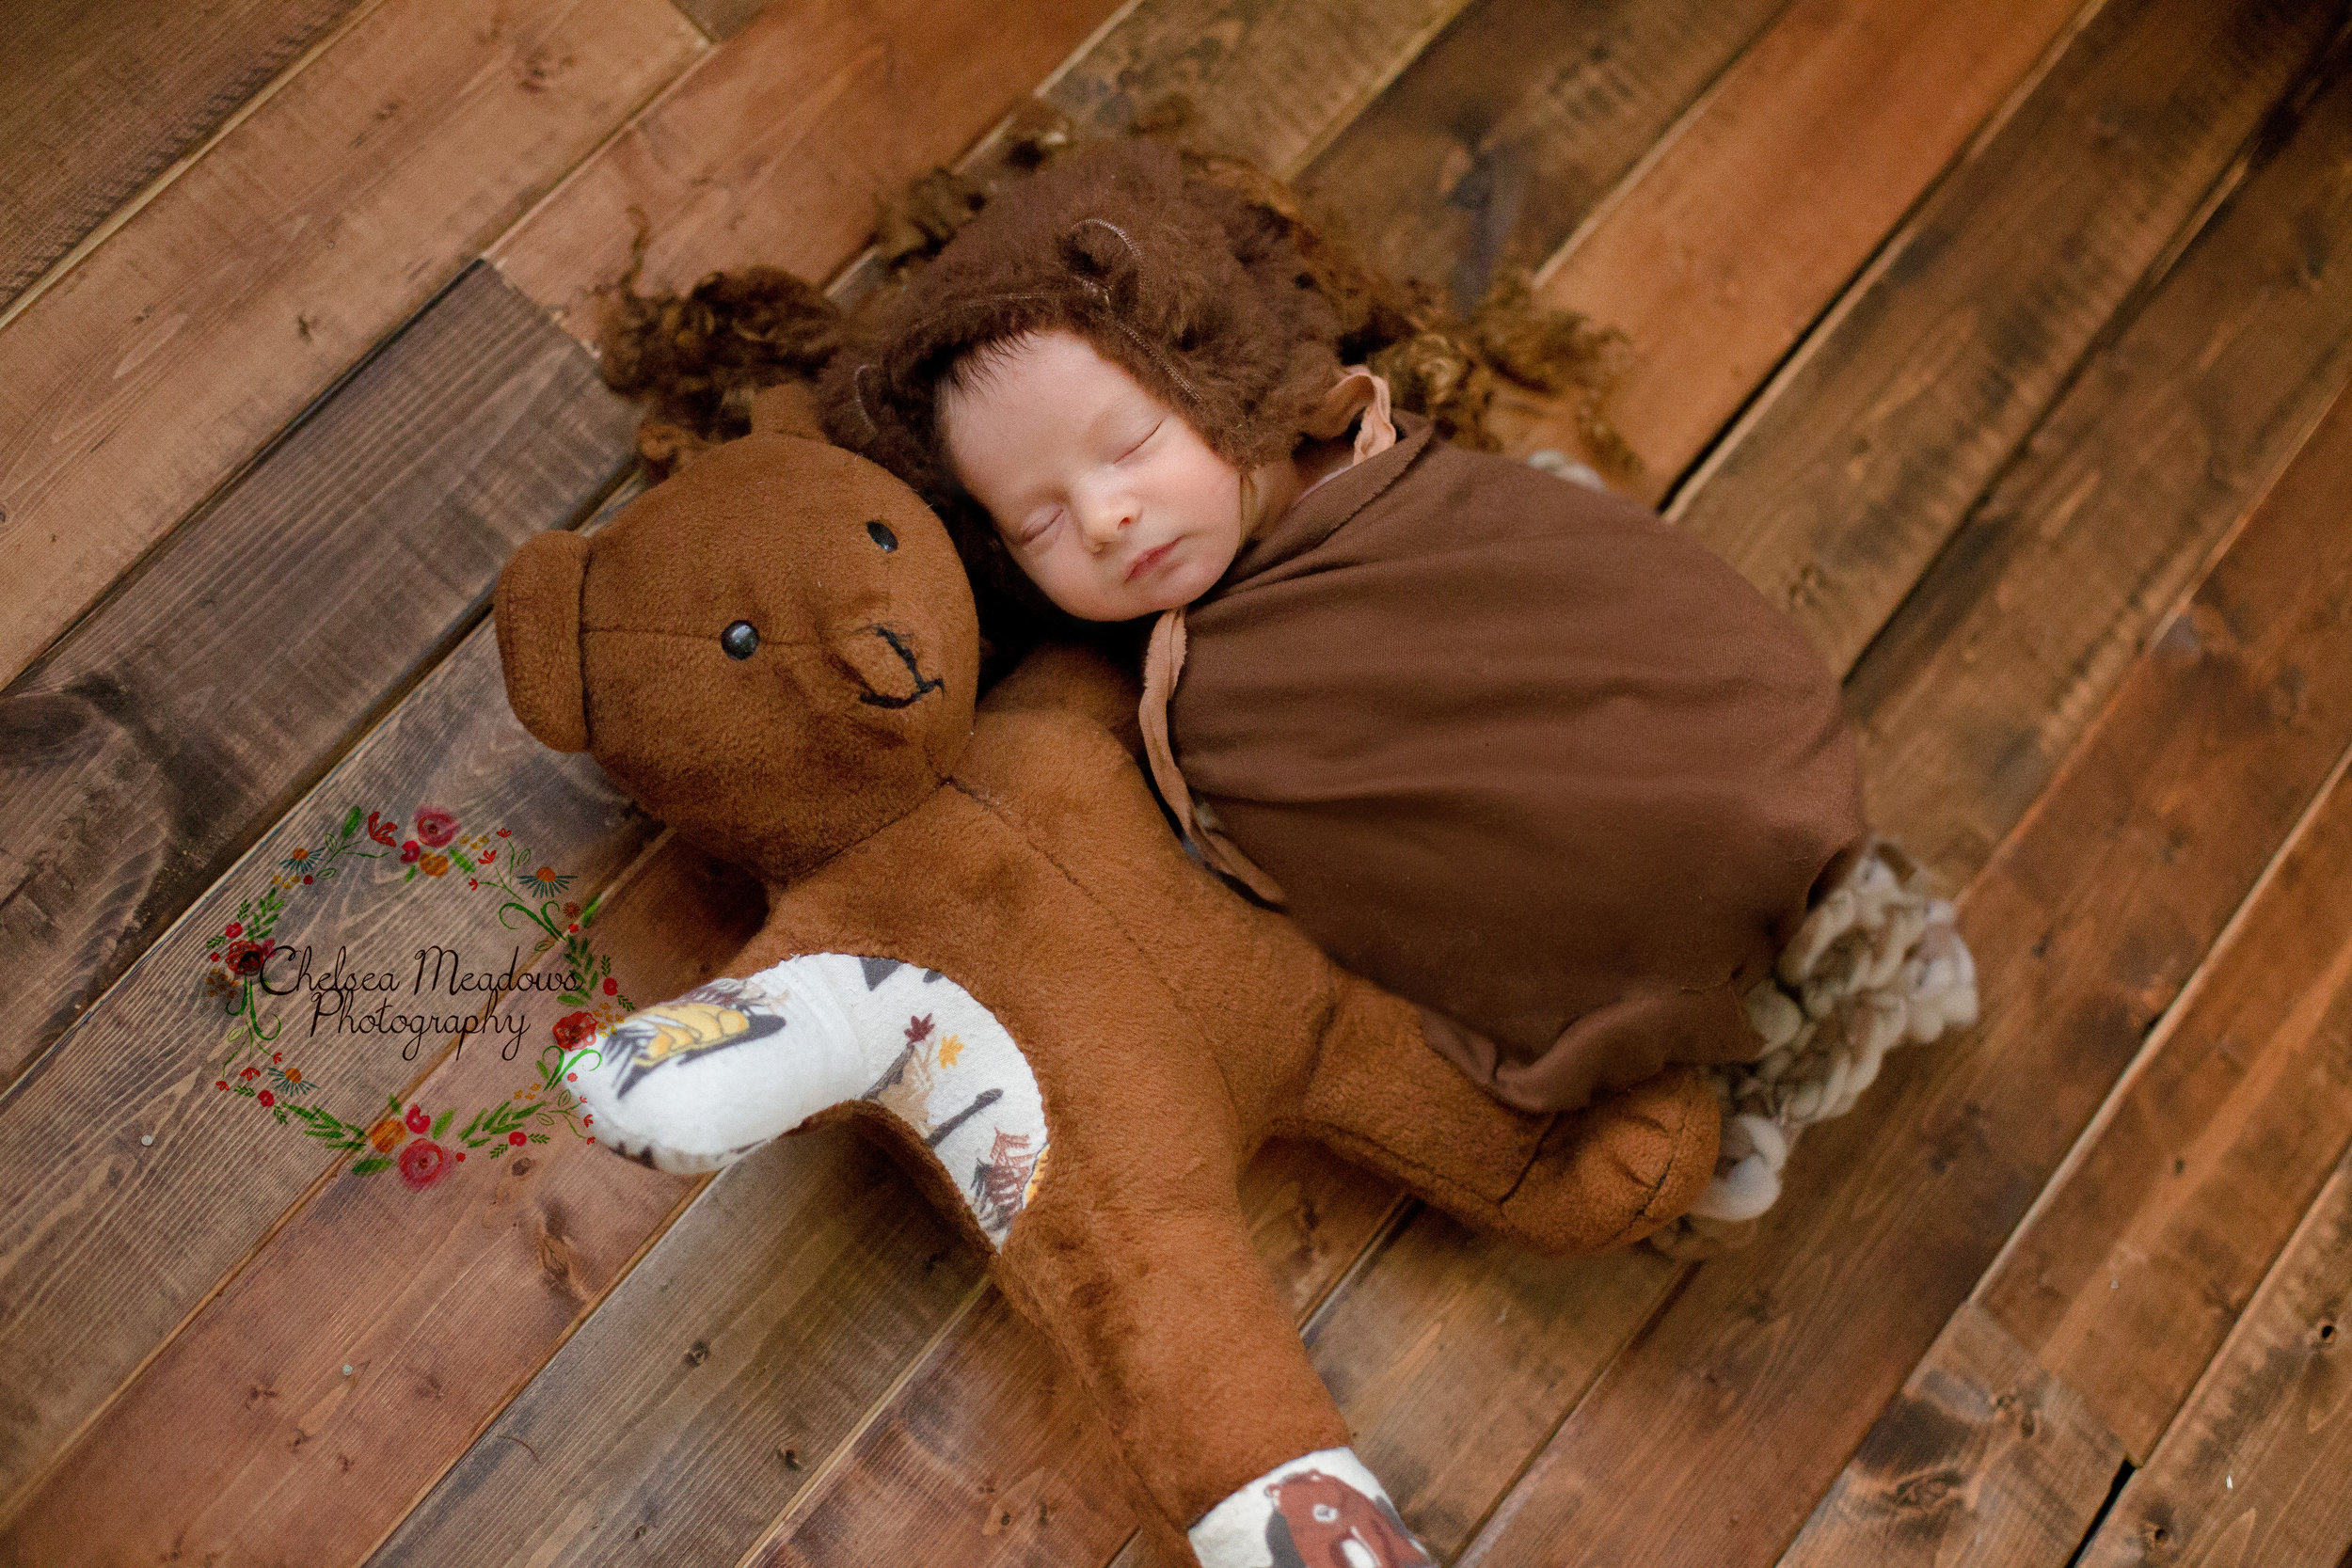 Rowan Newborn Session - Nashville Newborn Photographer - Chelsea Meadows Photography (11)_edited-1.jpg